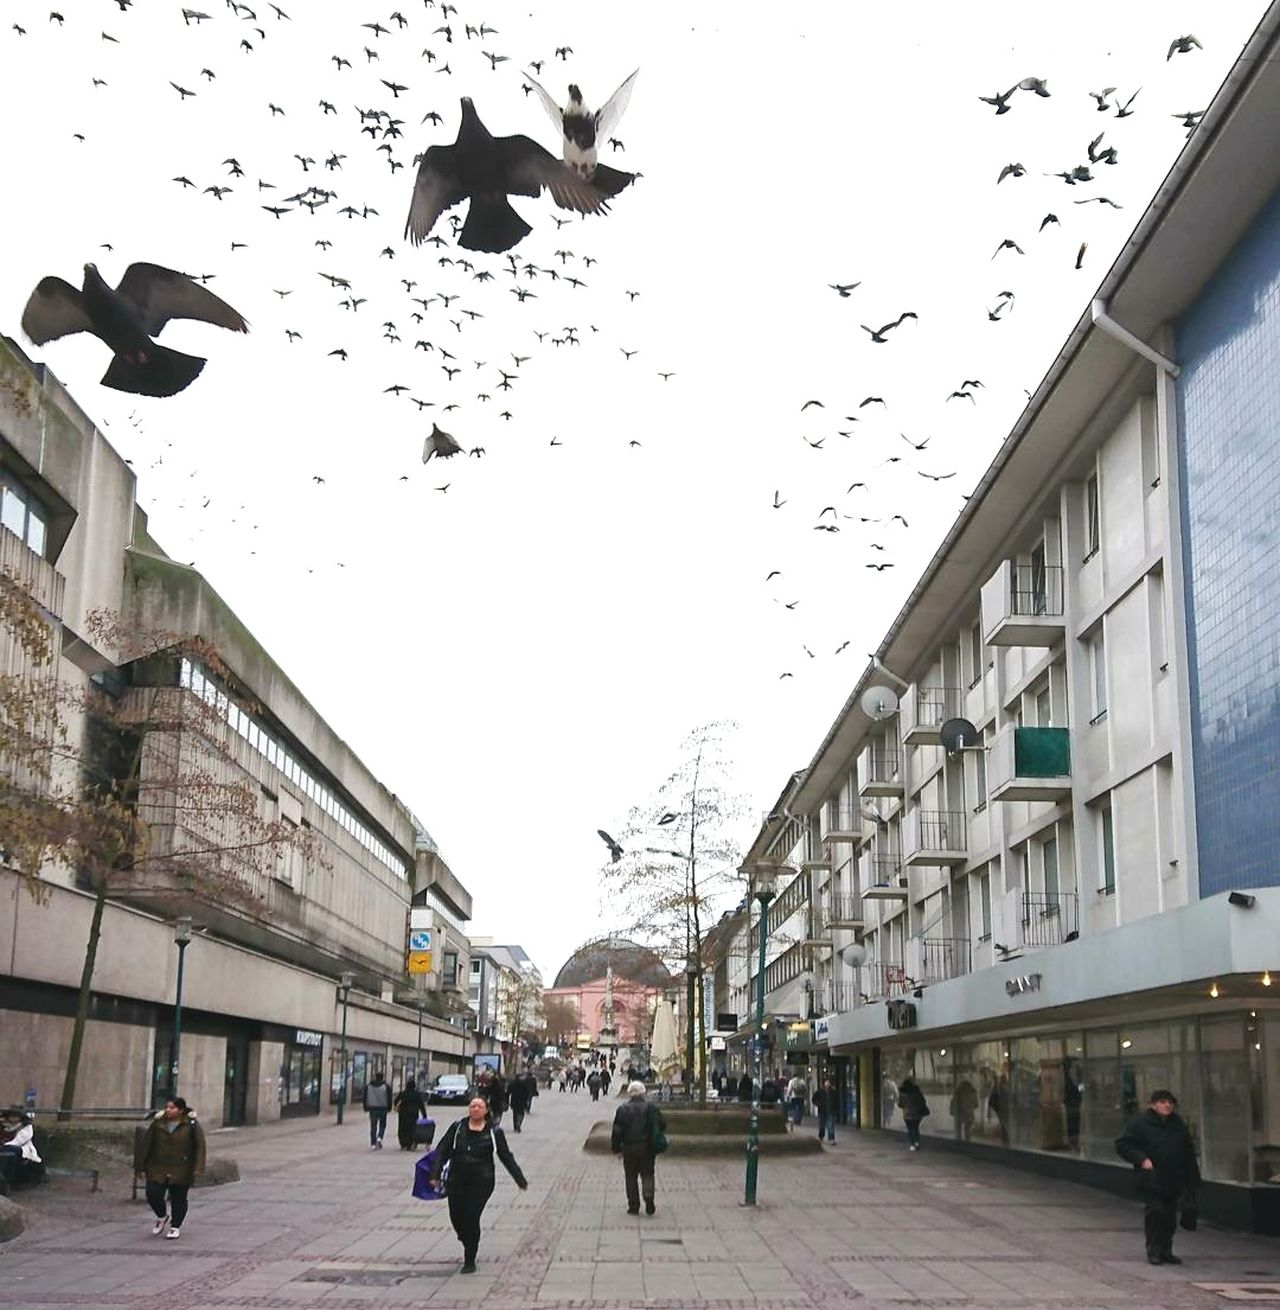 When pidgeons fly ... City Bird Large Group Of Animals Outdoors Flock Of Birds People Day Cityphotography Darmstadt